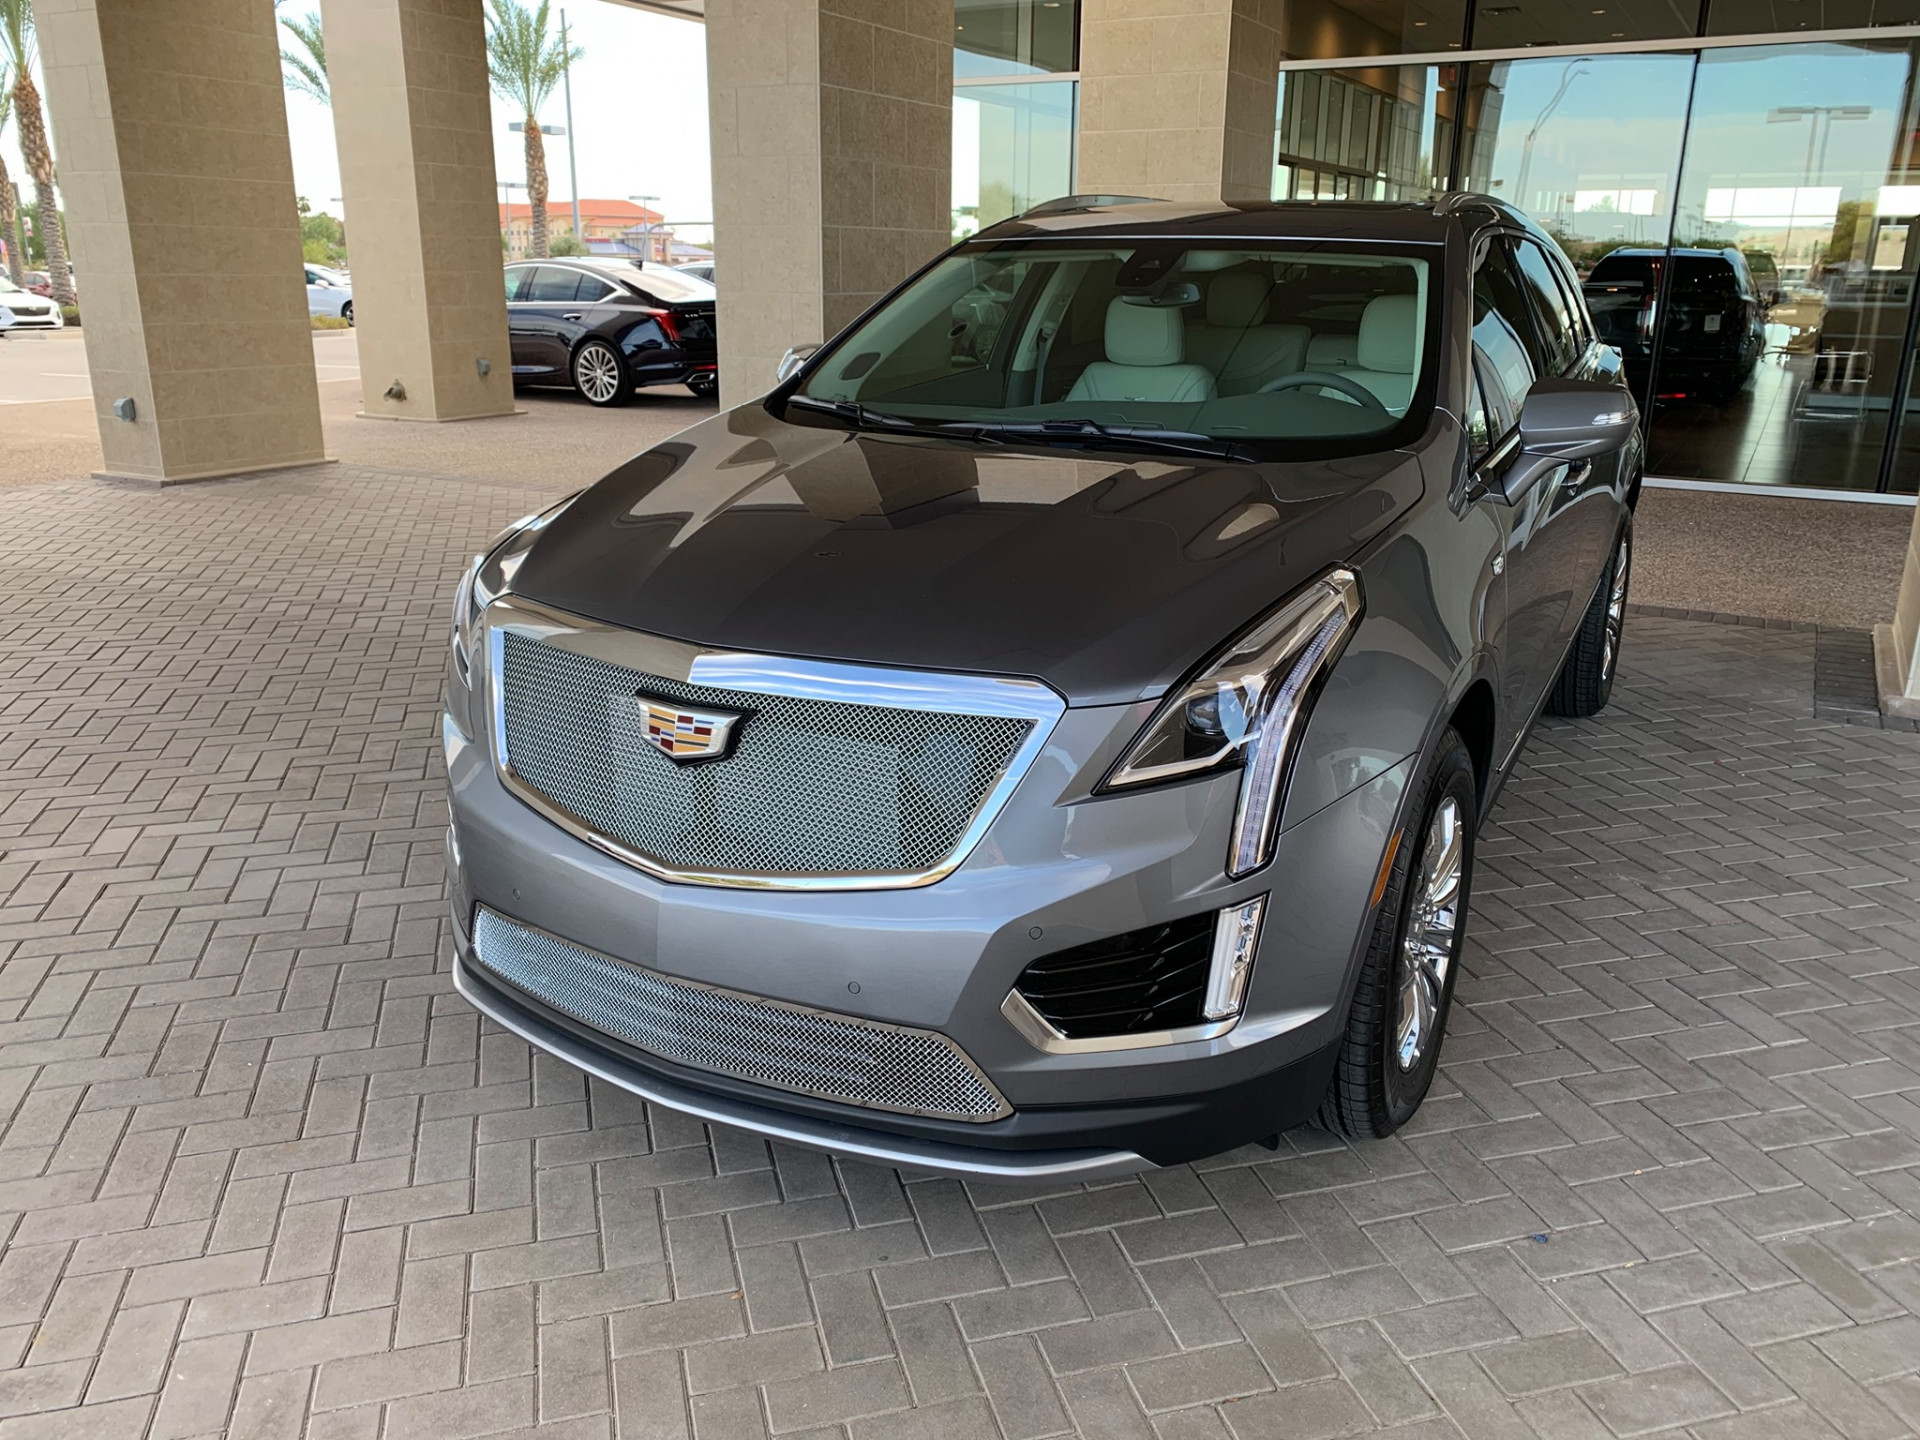 2021 Cadillac XT5 Upper/Lower Grille done by CVD